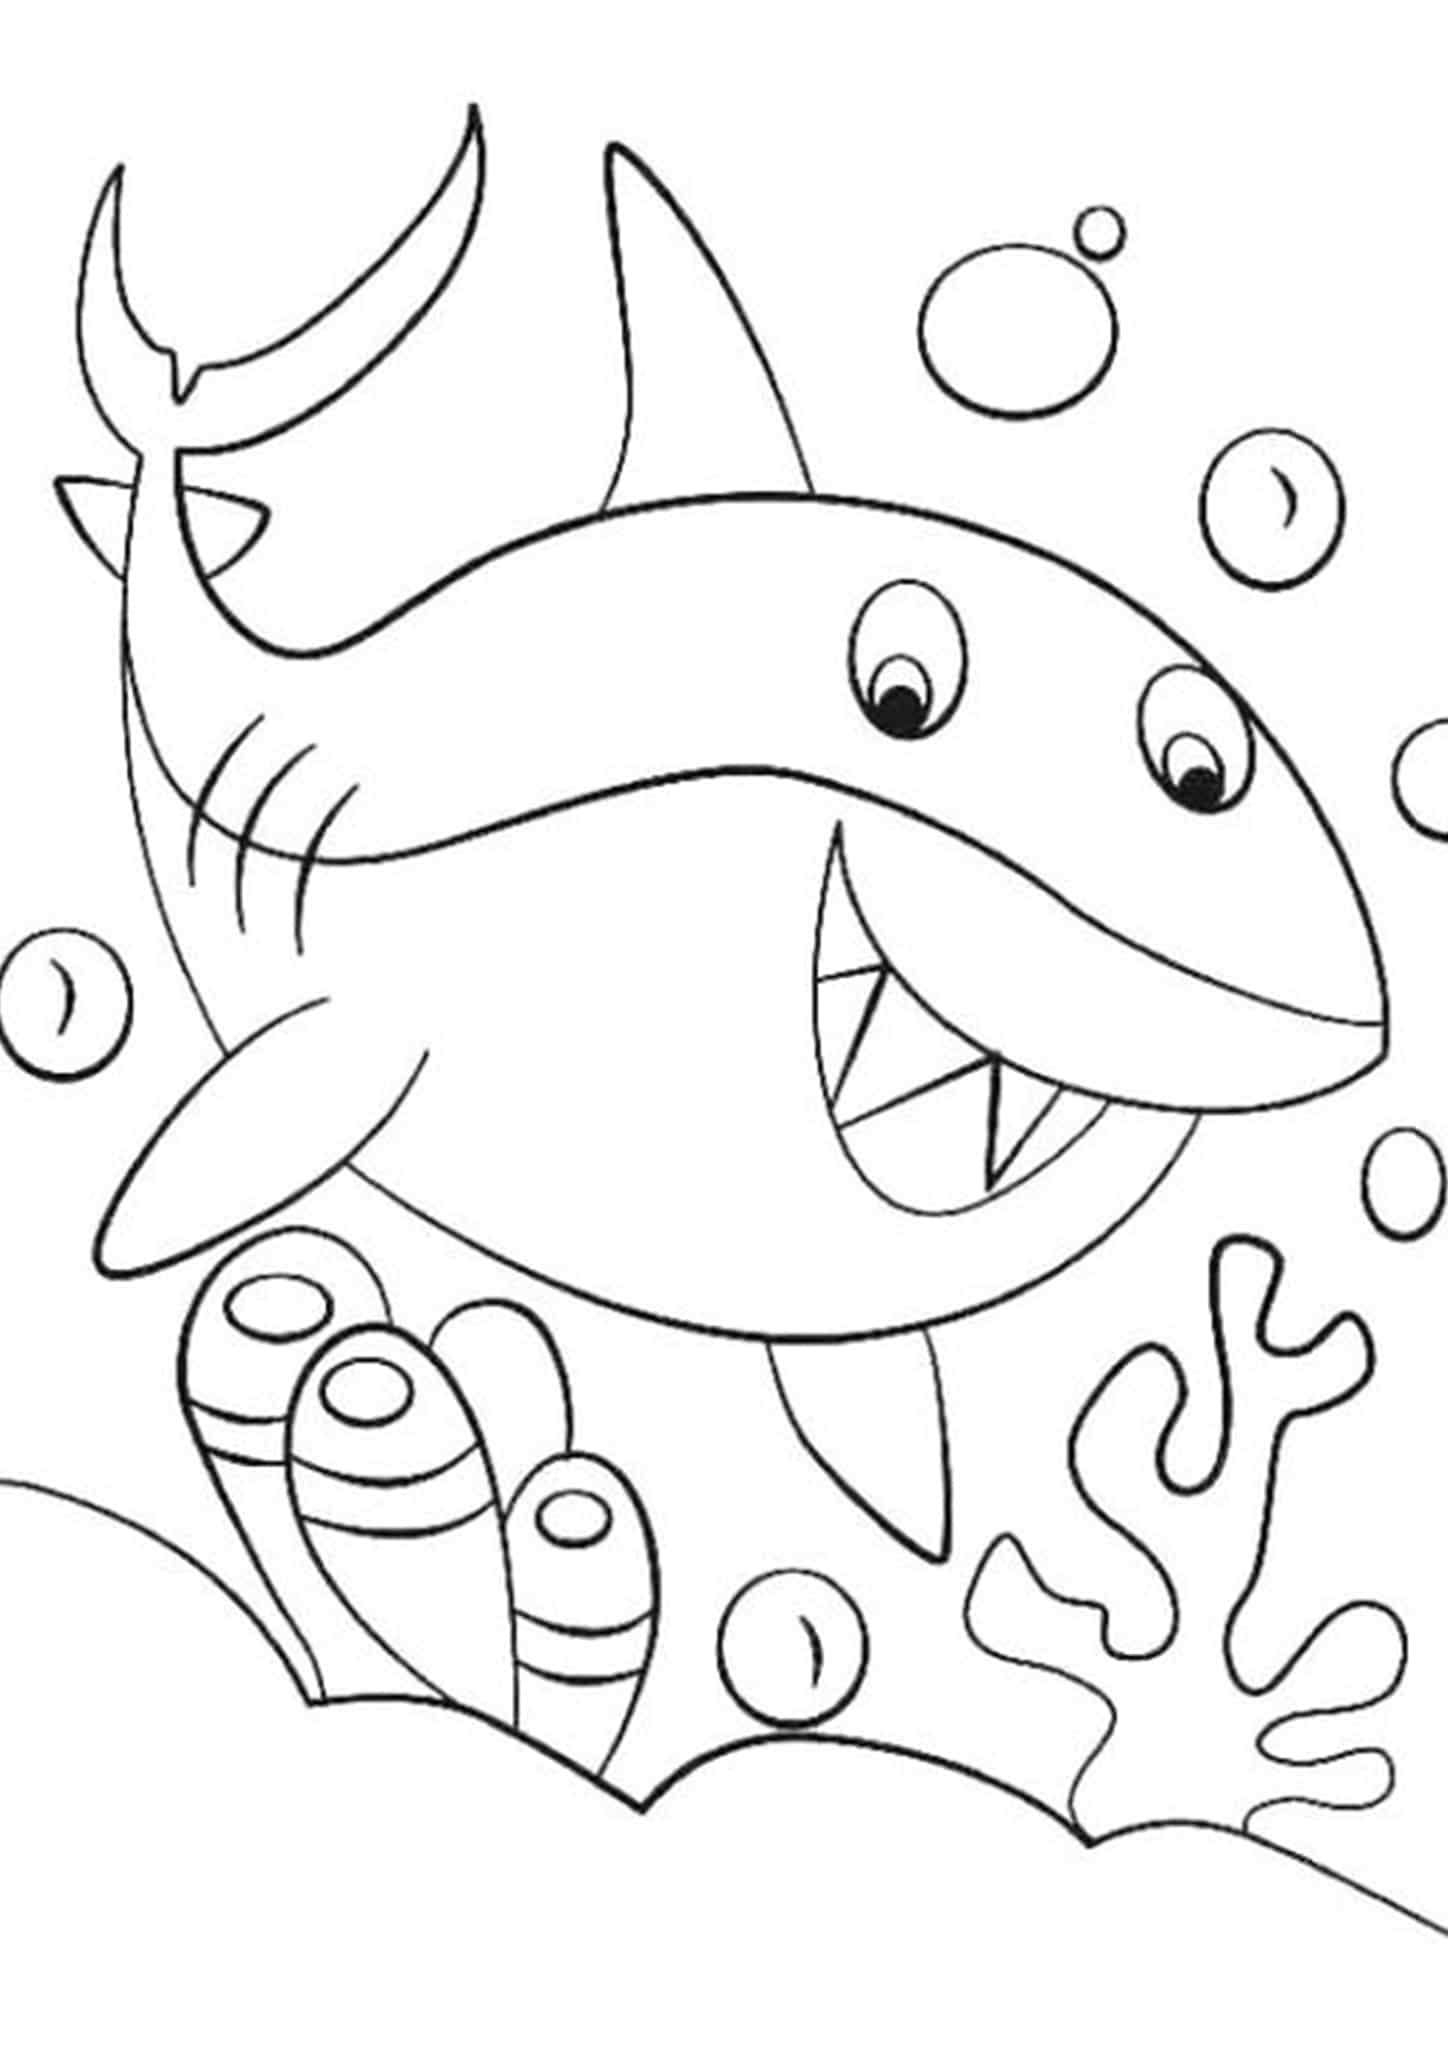 shark colouring picture baby shark coloring pages coloring home shark colouring picture